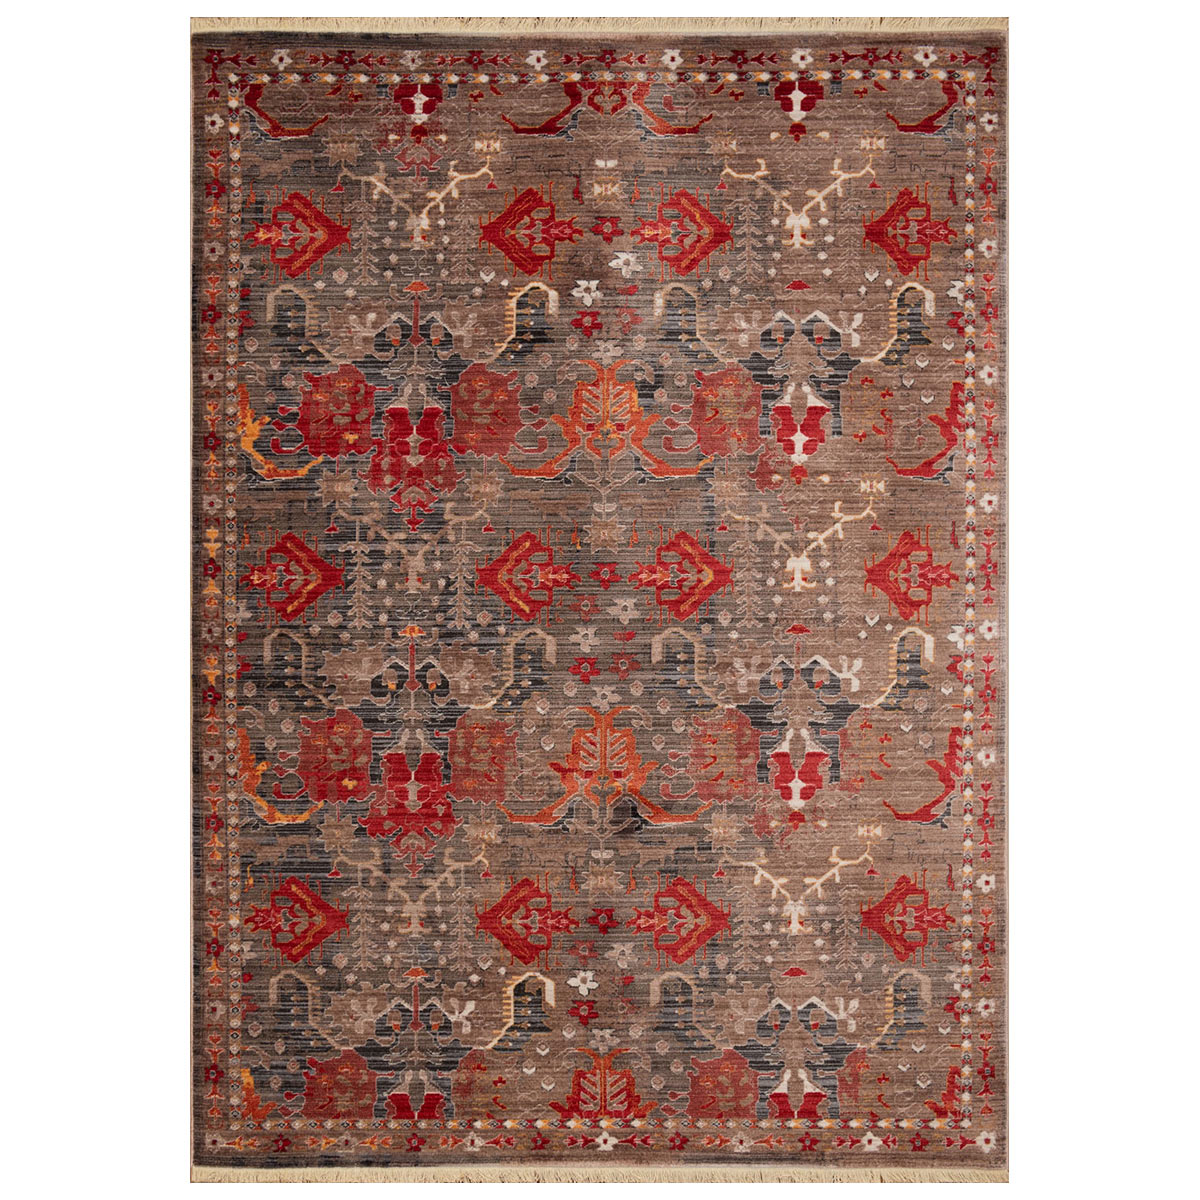 Spiced Canyon Rug - 8 x 11